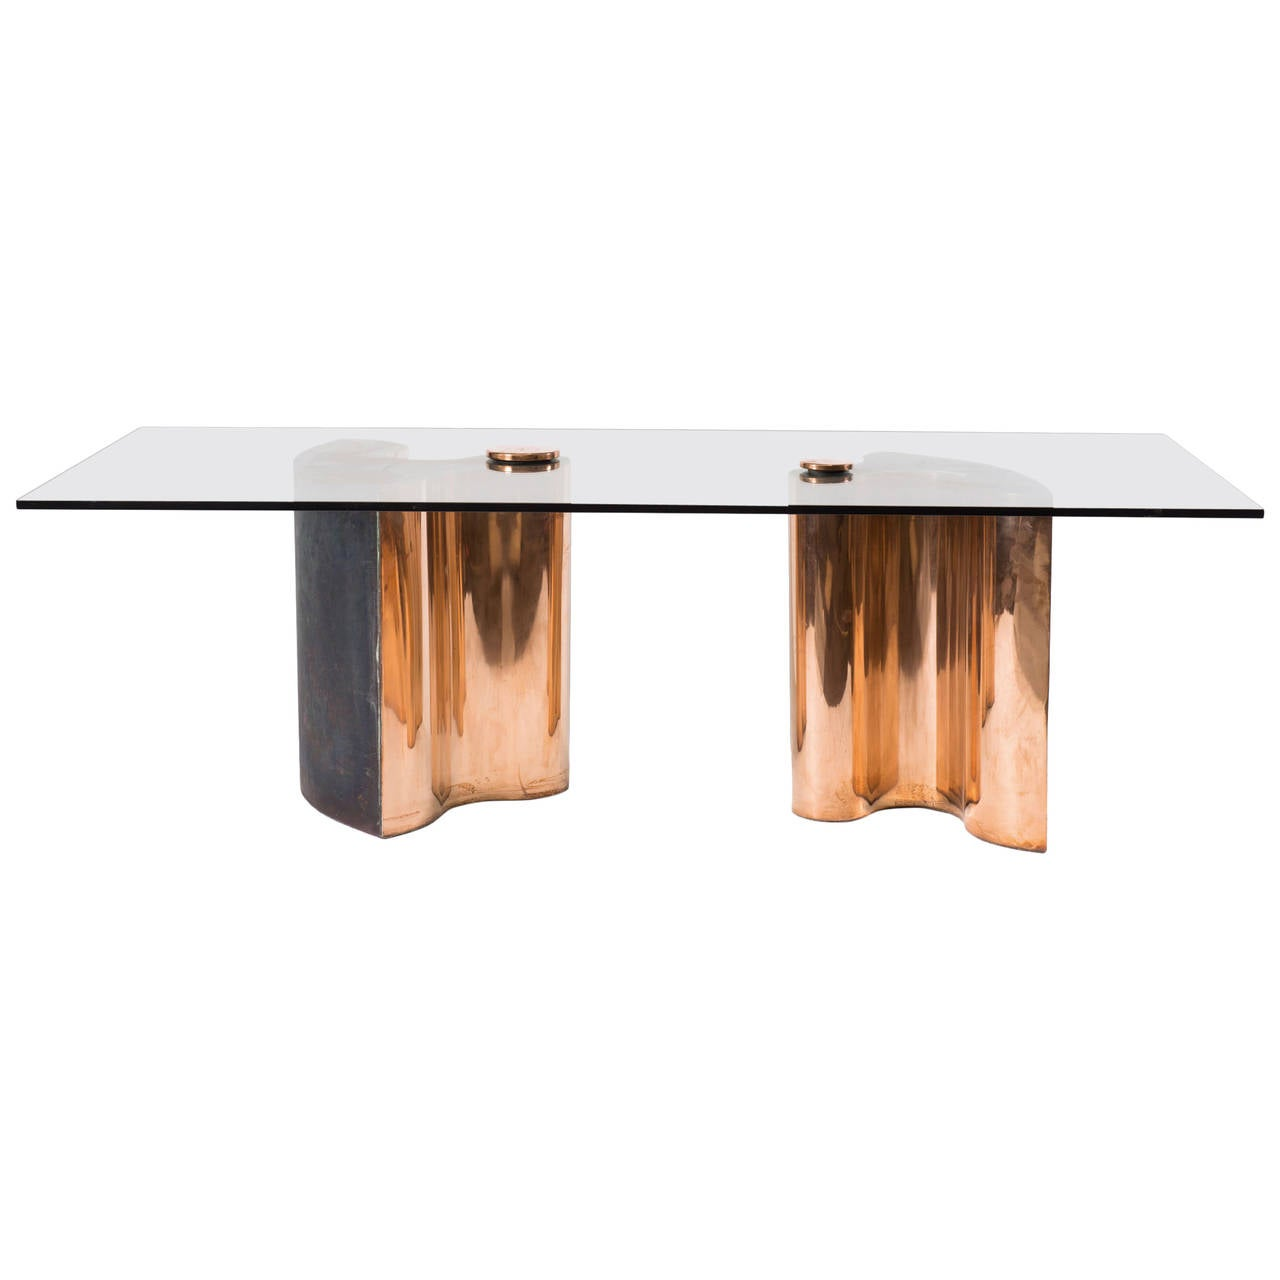 Unique Dining Table Brass Copper Plated Colorless Glass  : 2961252l from www.1stdibs.com size 1280 x 1280 jpeg 44kB